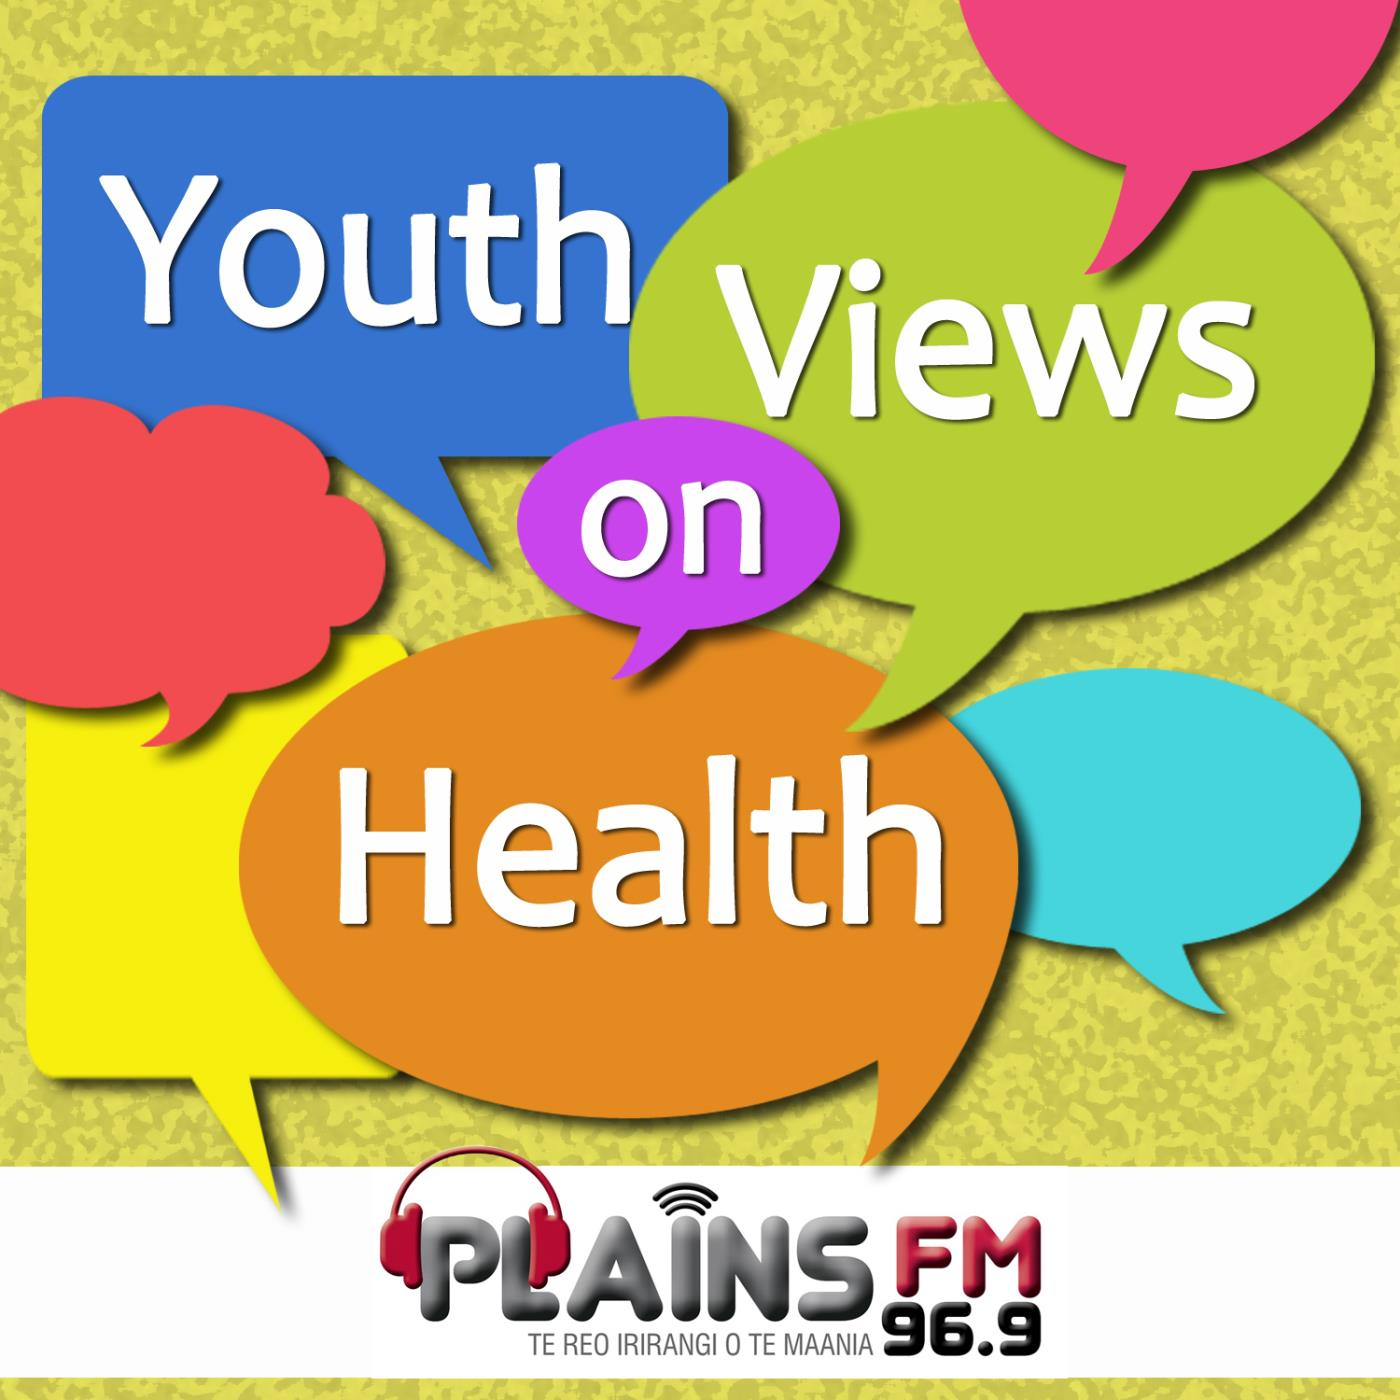 Youth Views on Health